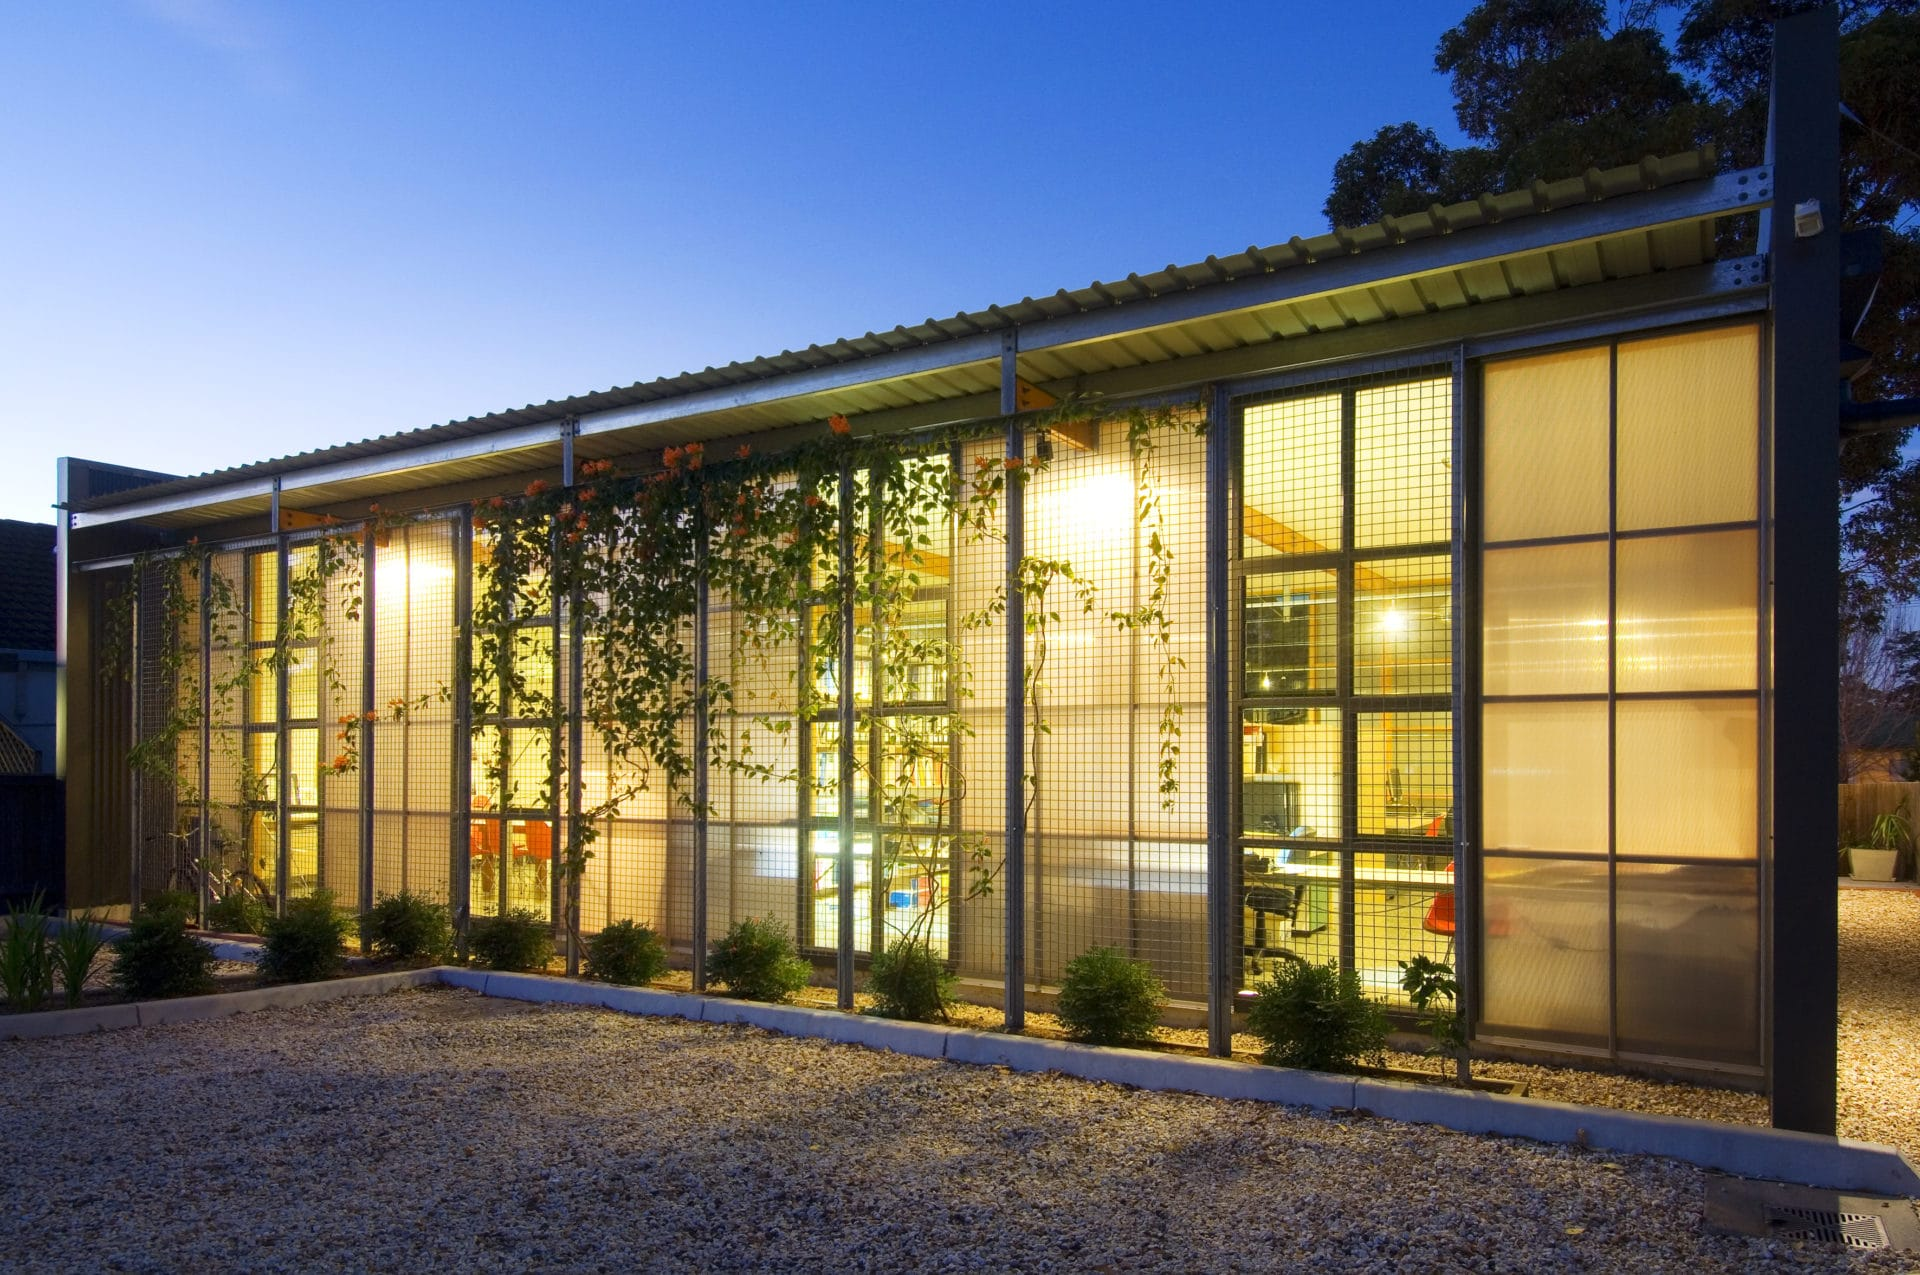 How a Commercial Building used Environmentally Friendly